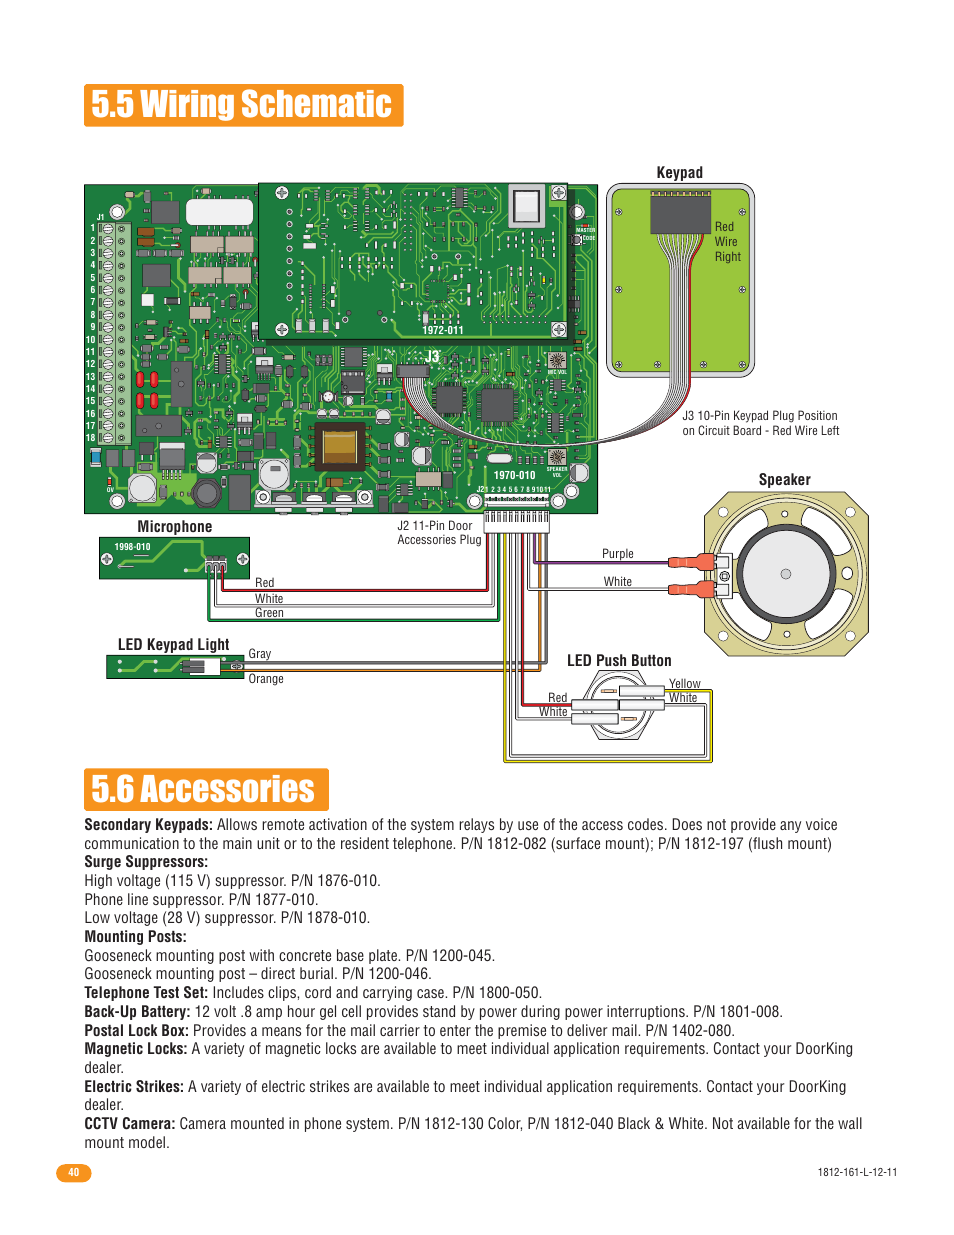 5 Wiring Schematic 56 Accessories Keypad Microphone Led Diagram For Light Push Button Speaker Doorking 1812 Plus User Manual Page 42 50